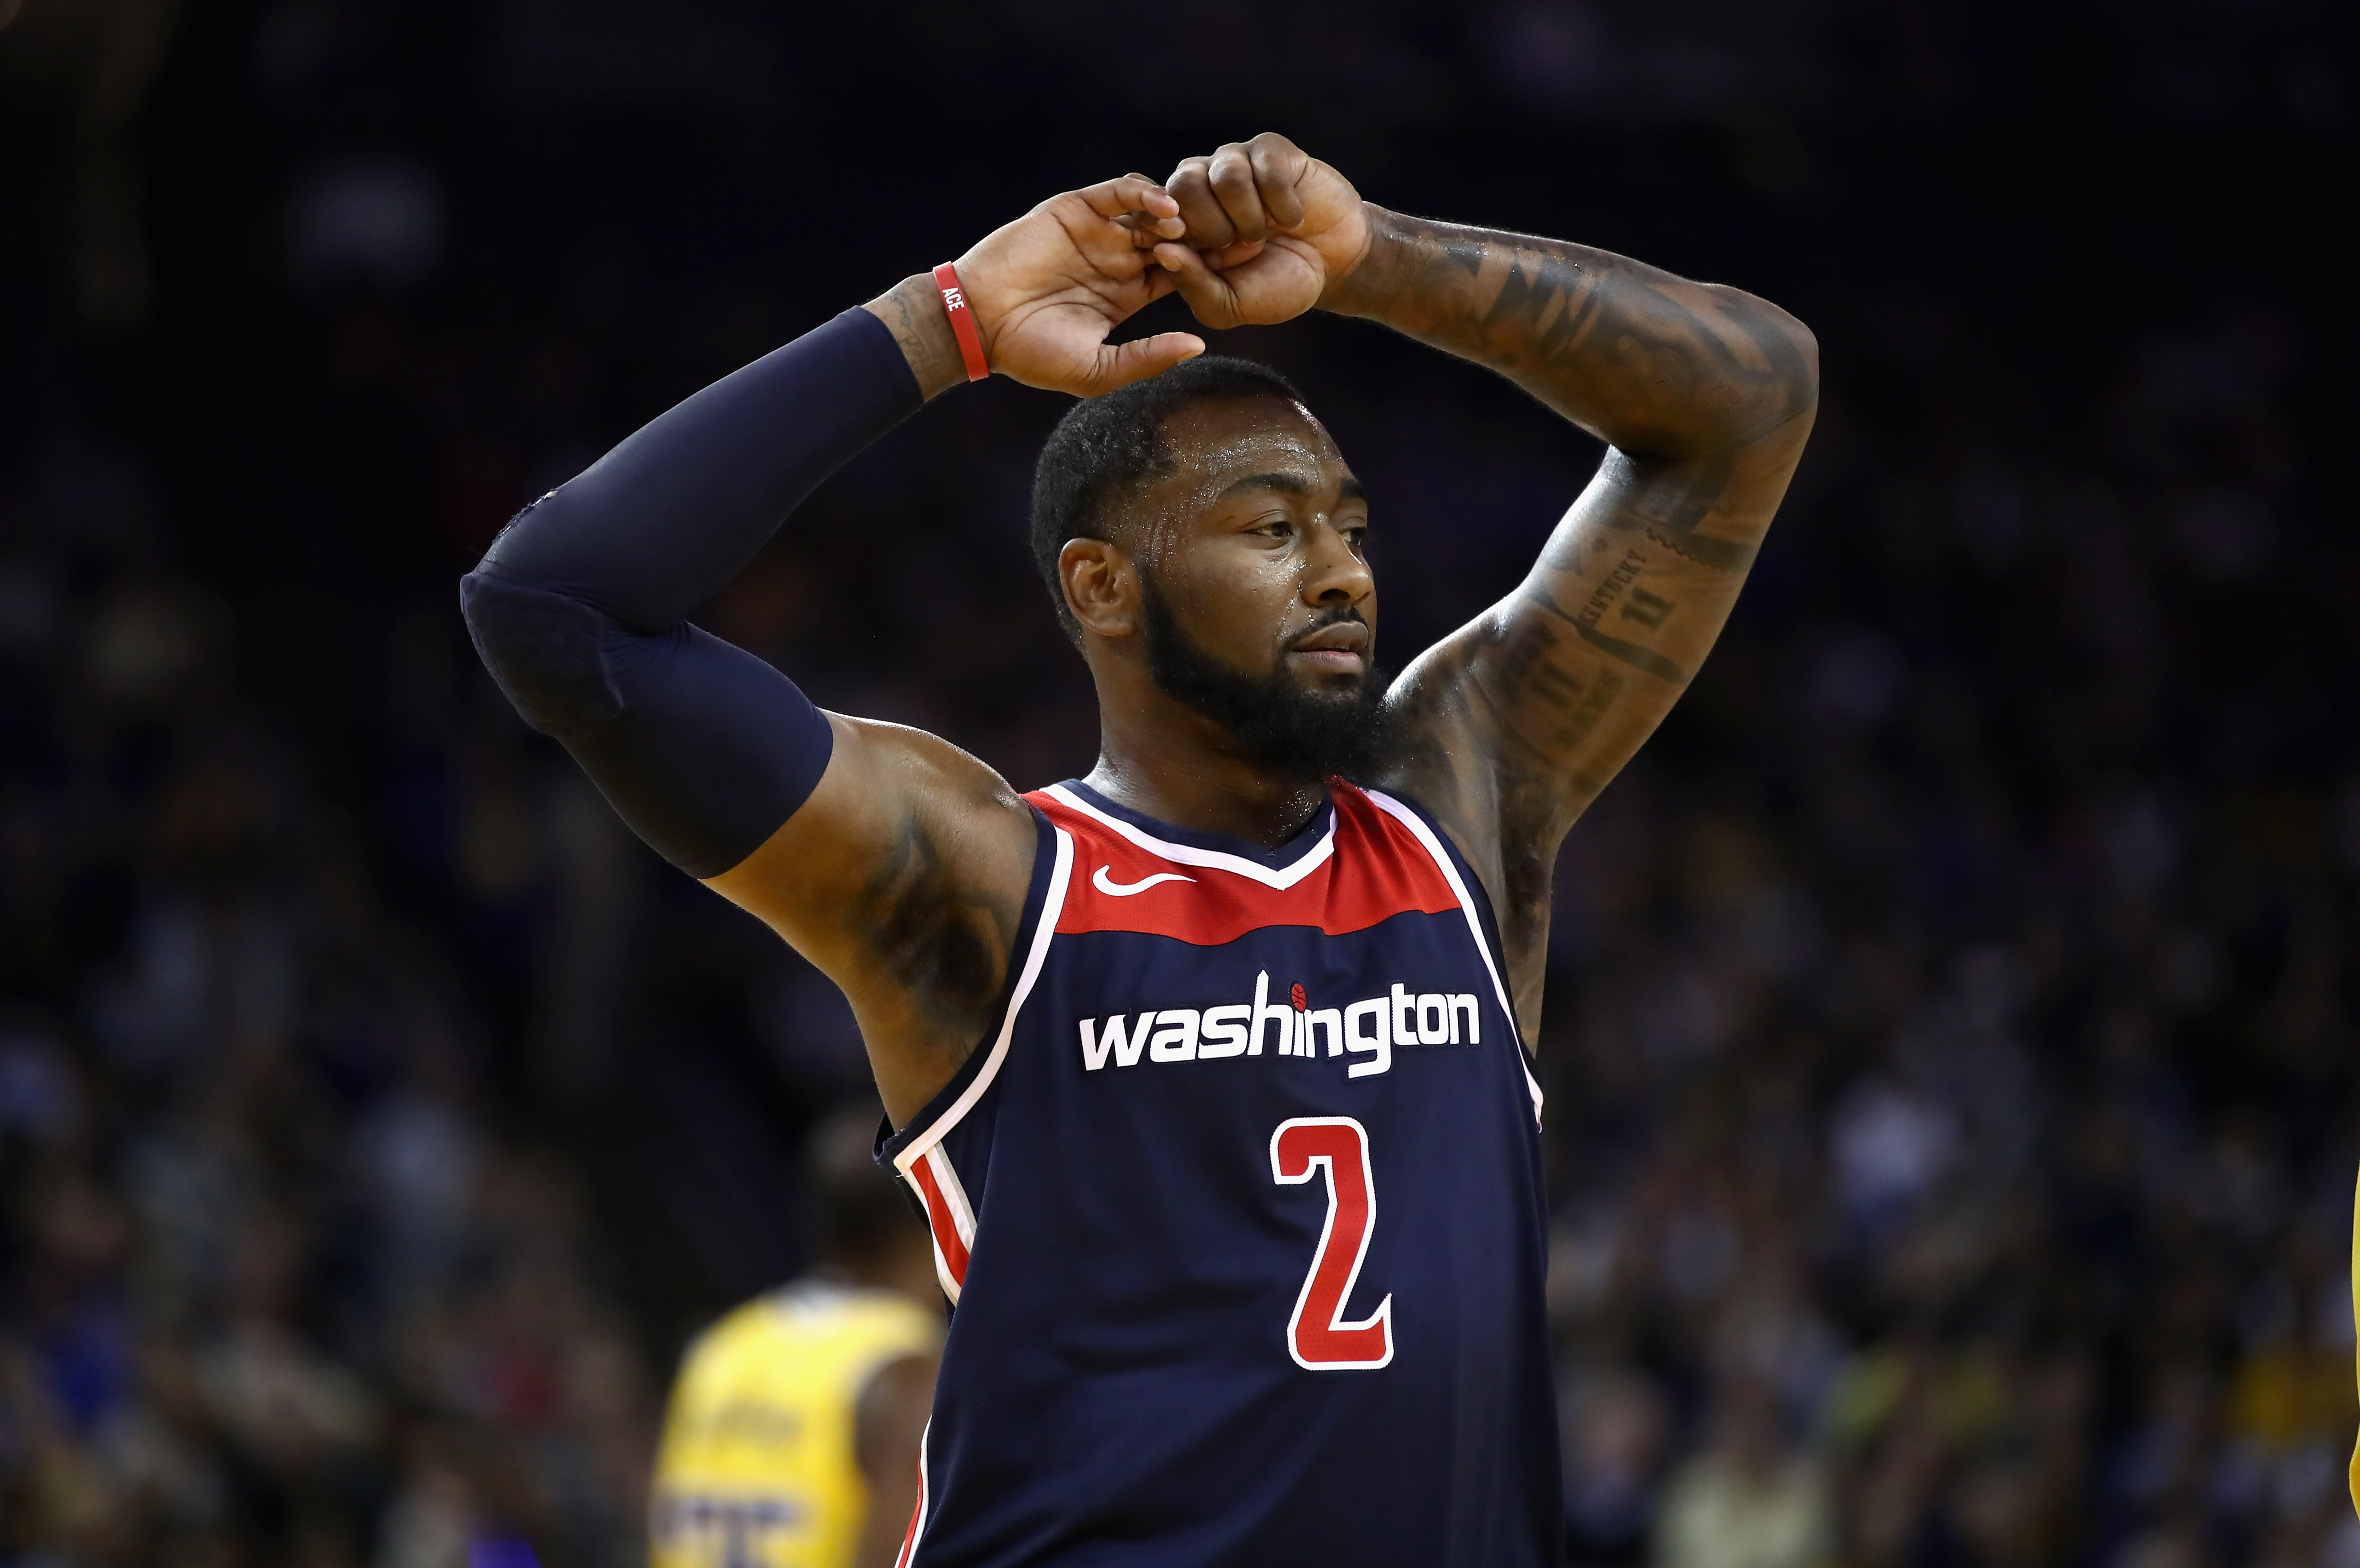 The Wizards need to blow it up. Let's start by finding a new home for John Wall